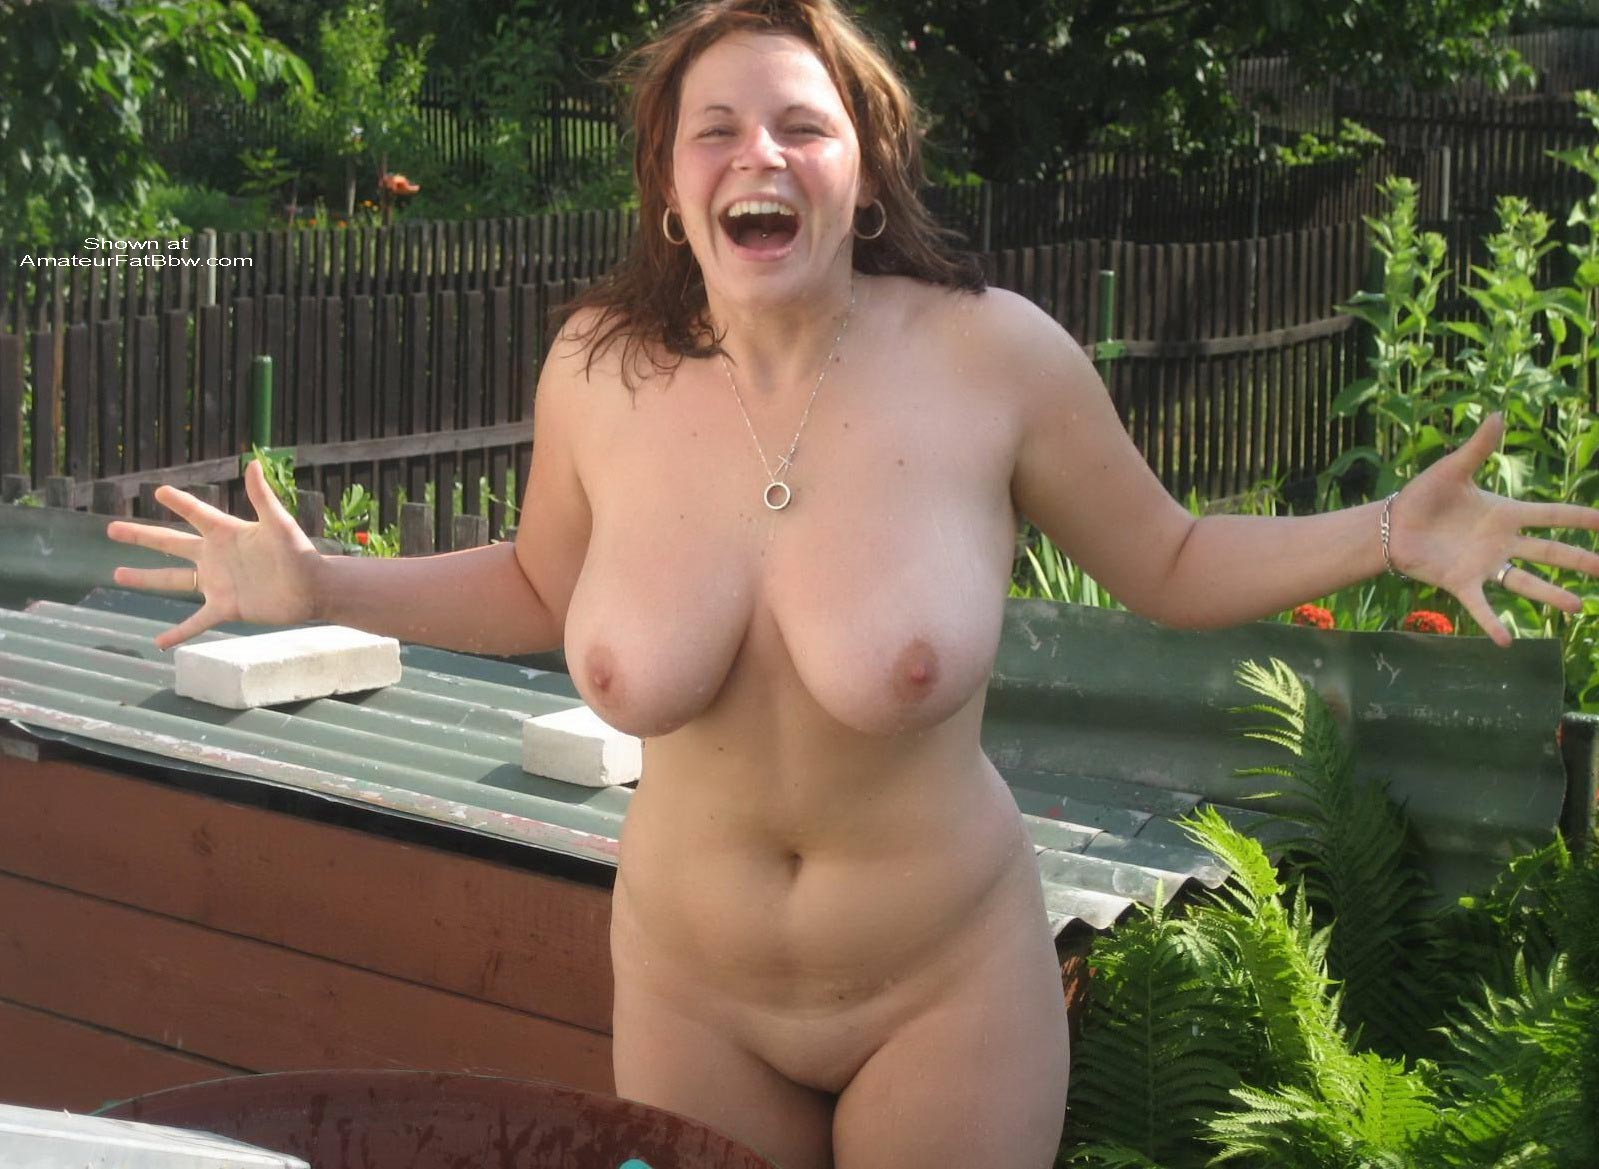 amature big tit video-adult clips